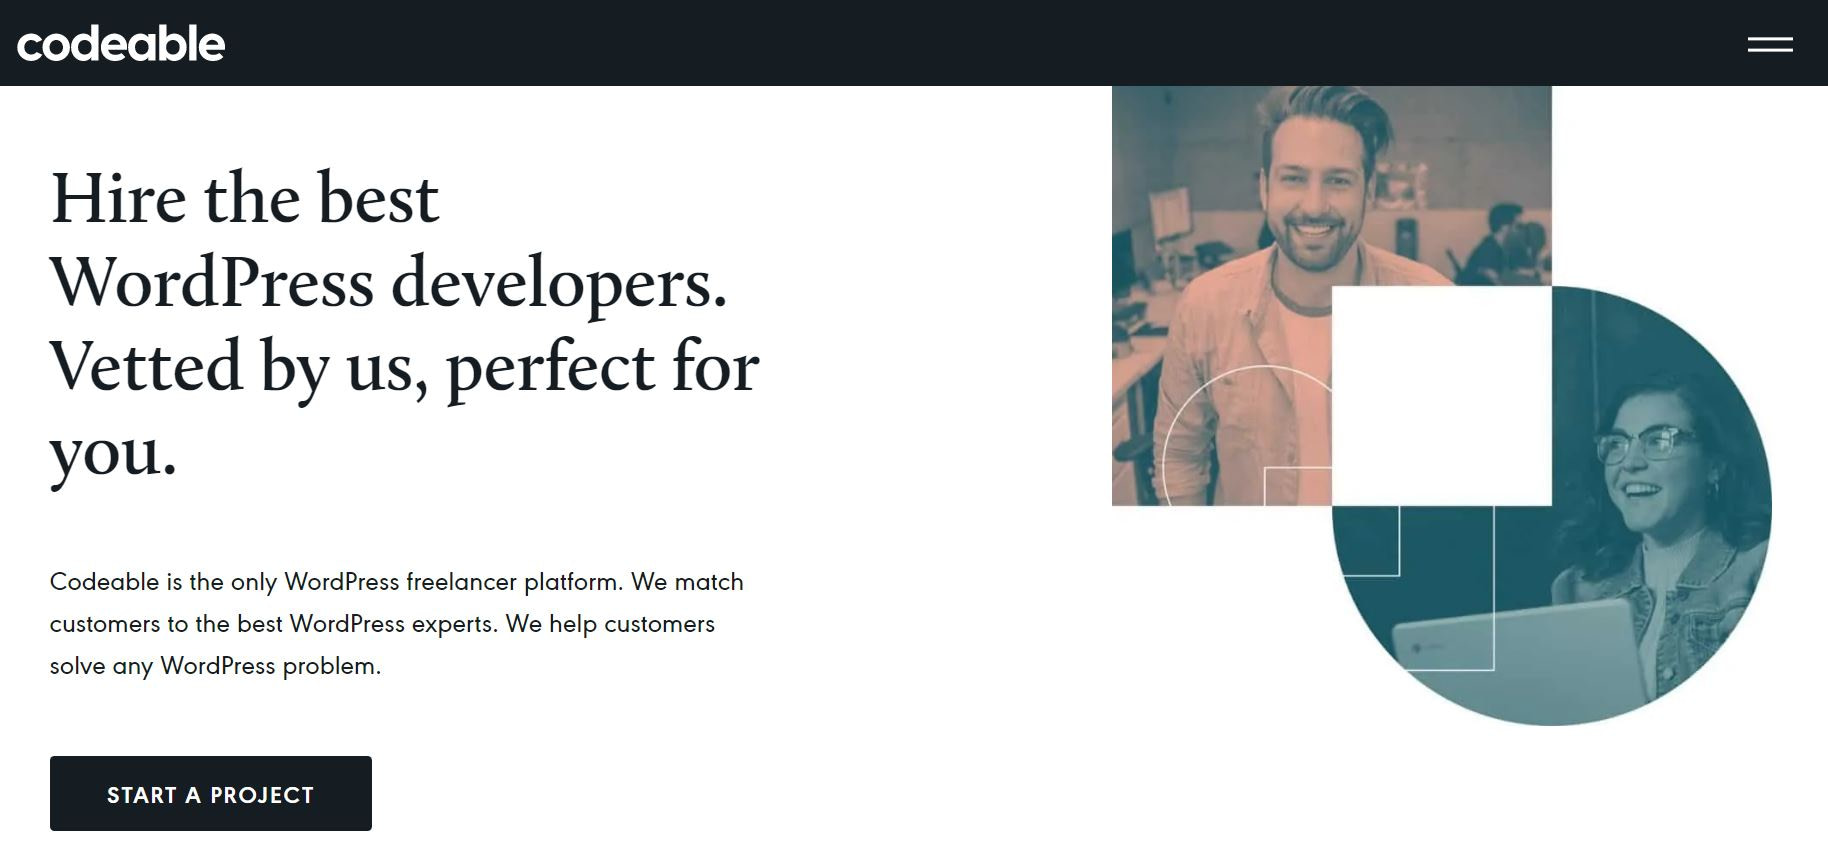 codeable hire WordPress developers